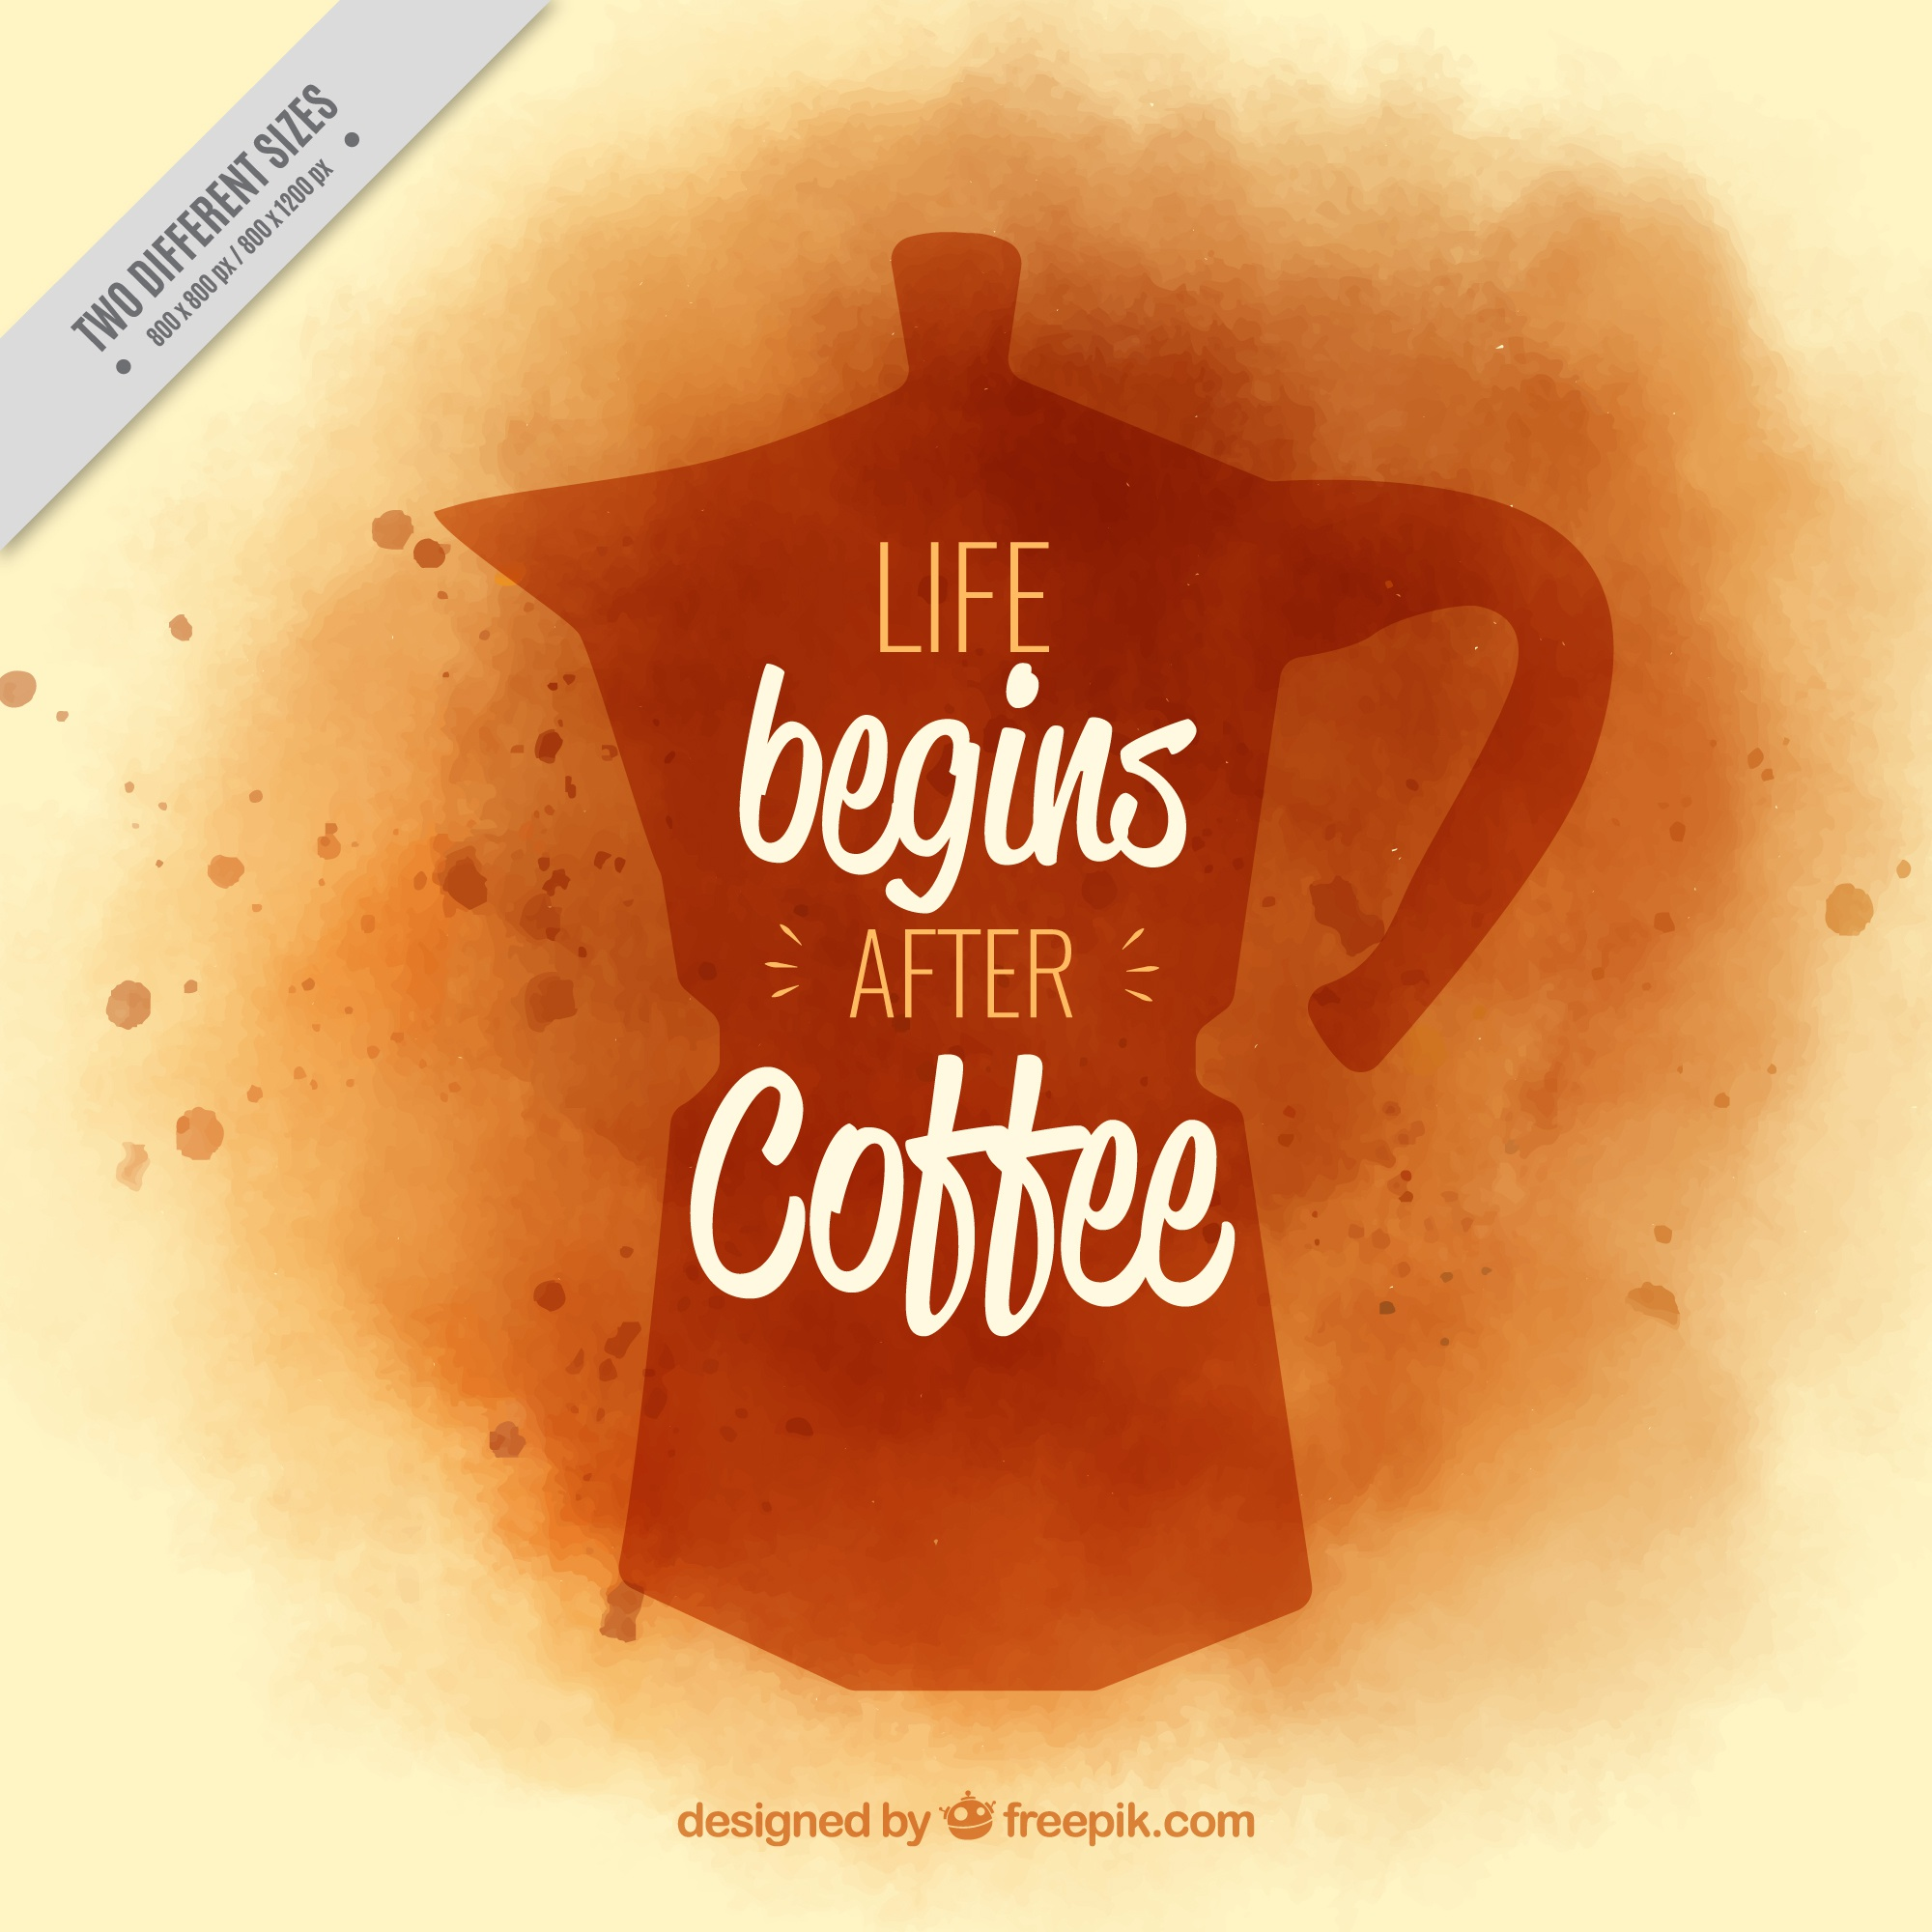 Watercolor background with silhouette of coffee maker and message